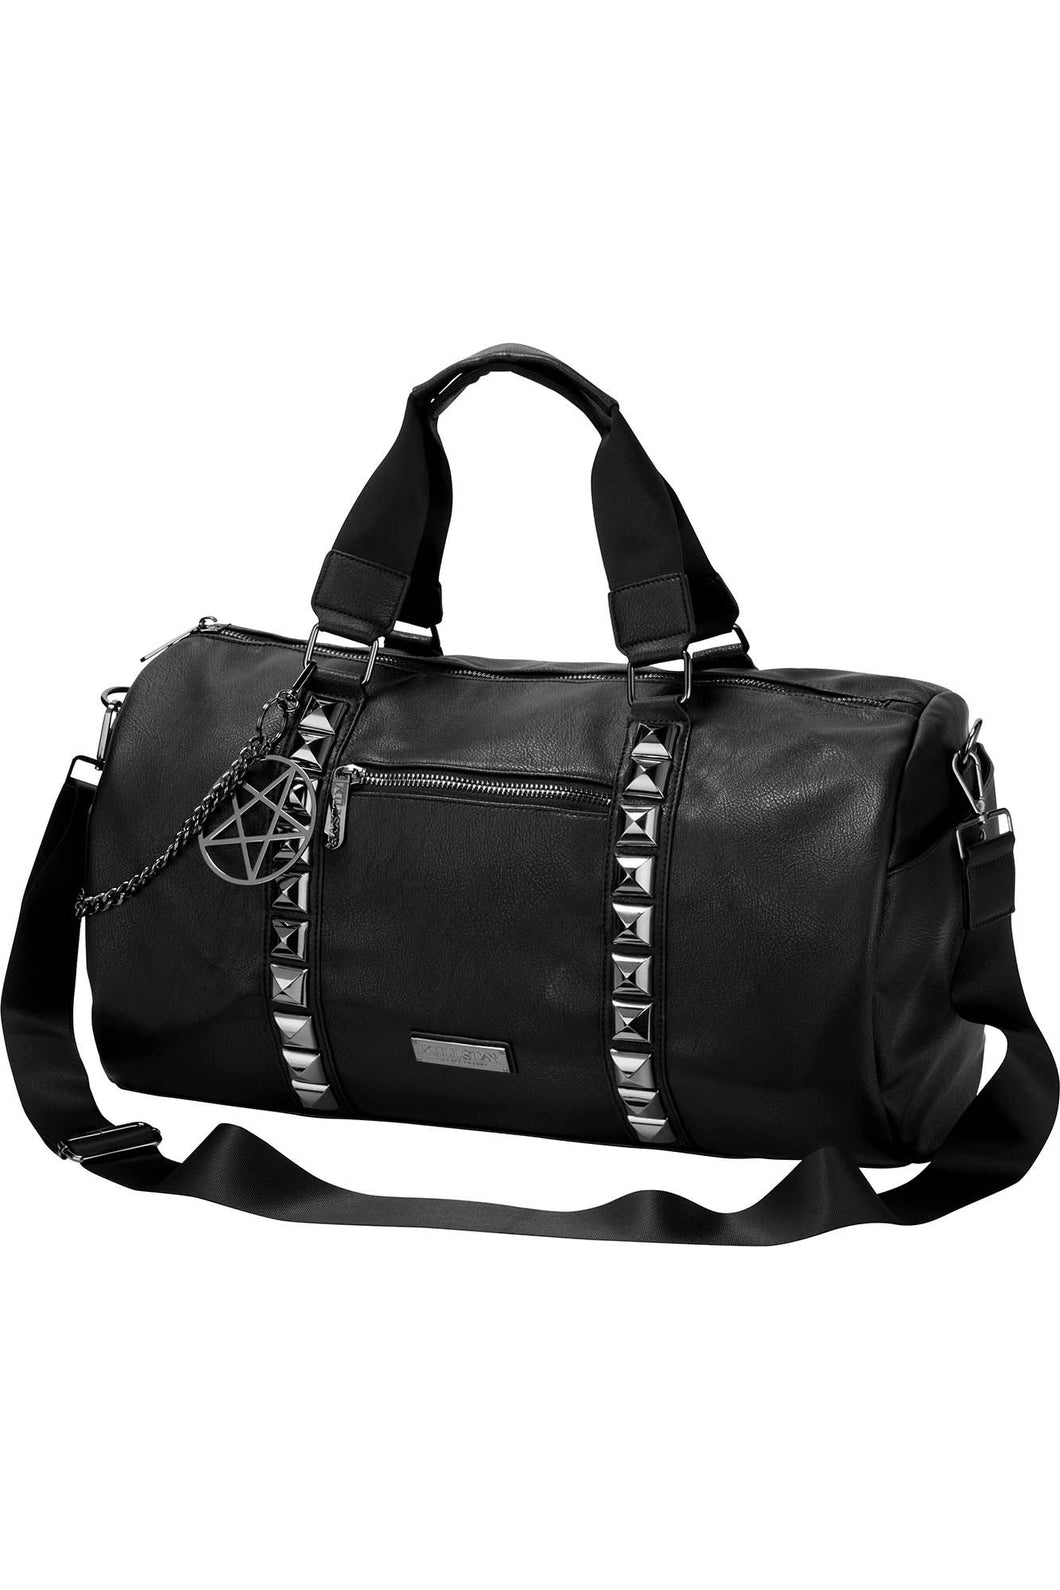 Killstar Backstage Dufflebag - Kate's Clothing